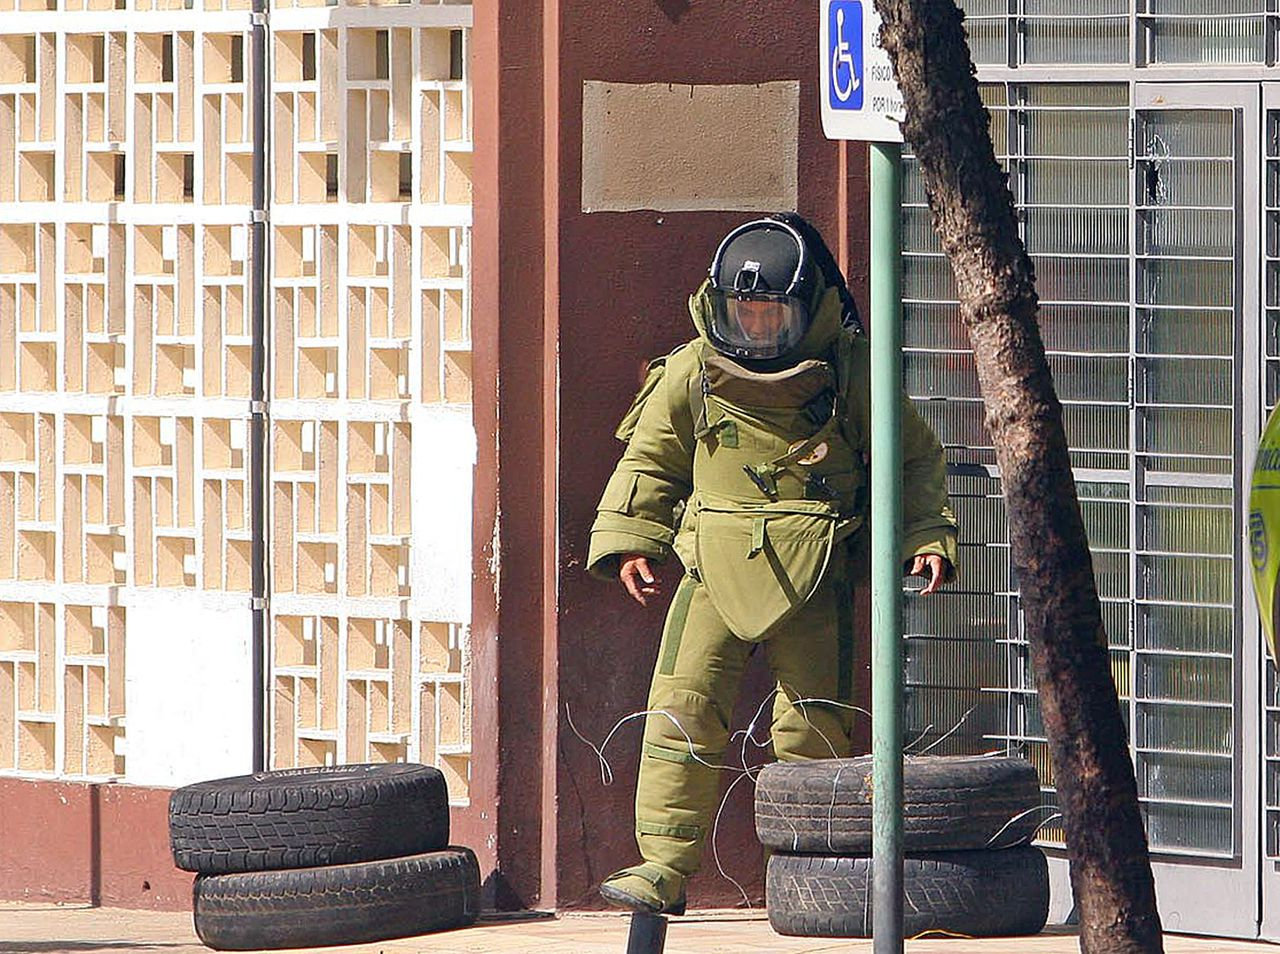 An explosives specialist of the police Special Tactics Action Group sets a grenade --previously thrown against the Forum by unidentified attackers-- for its controlled explosion 15 May, 2006 in Sao Jose dos Campos, 170 Km north of Sao Paulo, Brazil. Gangs torched buses and attacked Sao Paulo banks in a new wave of attacks that authorities say has left 81 dead in three days. Carrying out orders which authorities say were given by gang bosses from their prison cells, armed men forced passengers out of buses before burning the vehicles. They also attacked banks, while prison rebellions spread across Sao Paulo state and beyond. AFP PHOTO LUCIANO COCA/AESTADO BRAZIL OUT INTERNET OUT